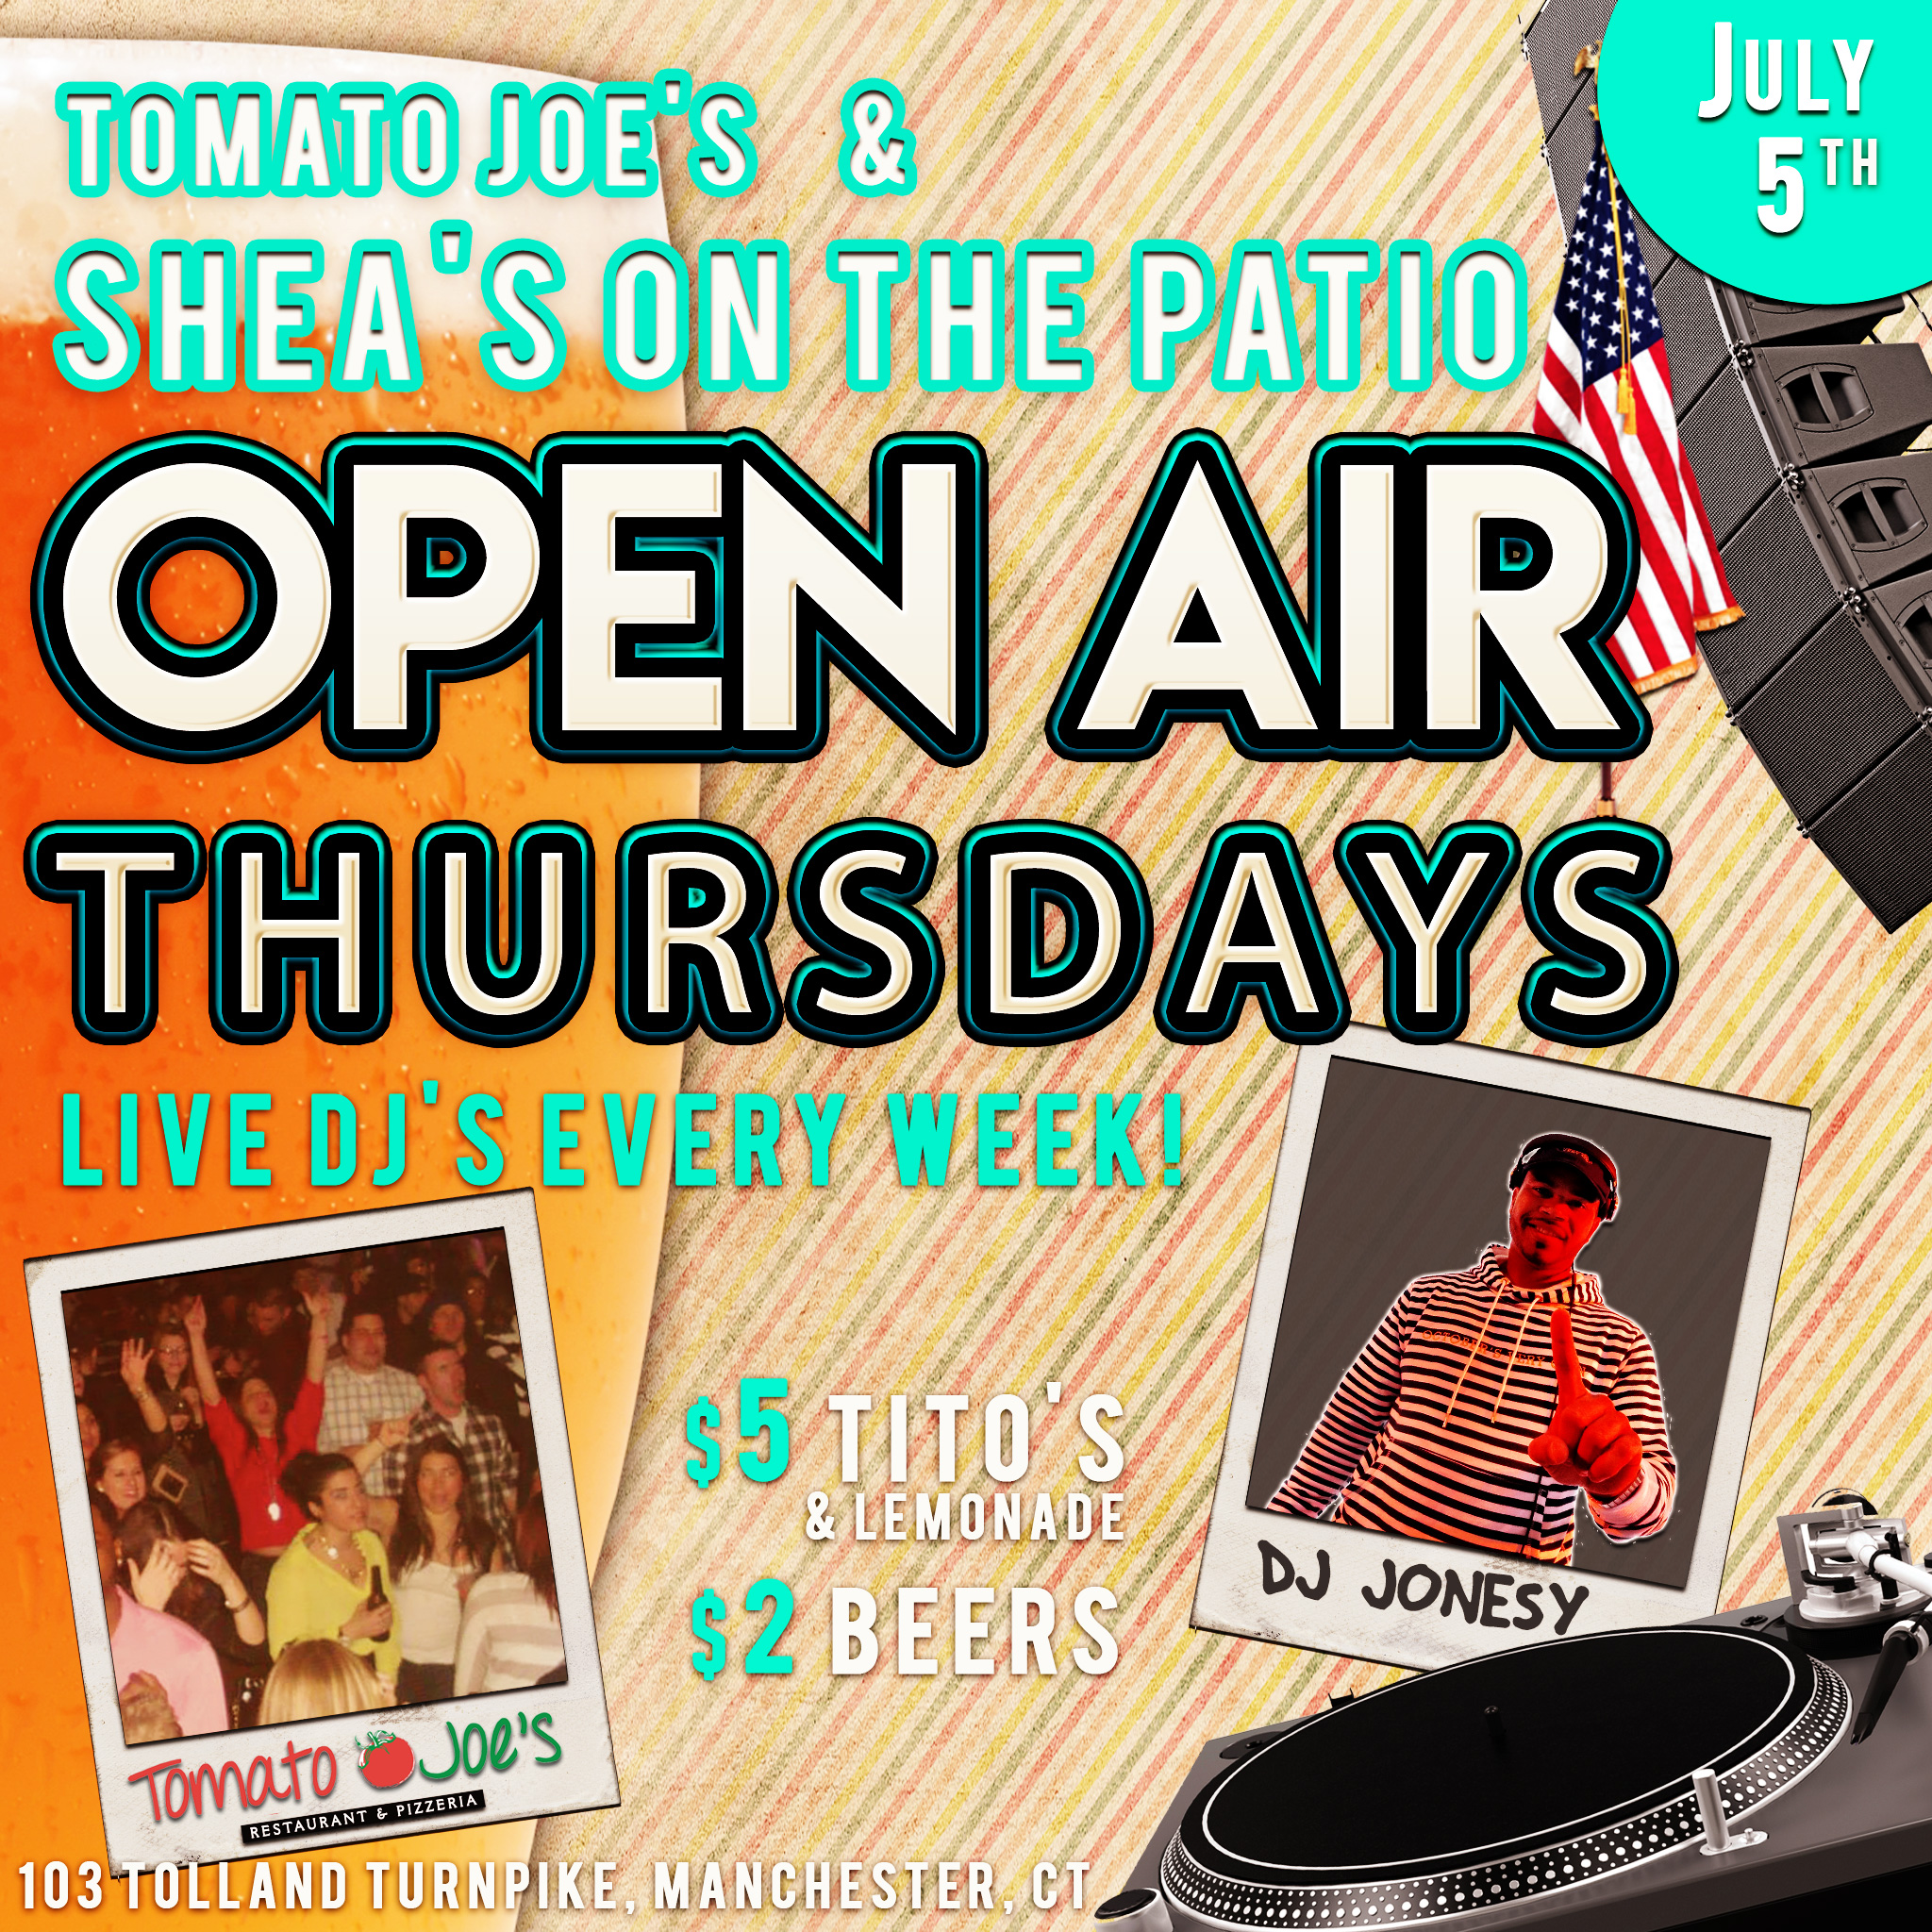 patio-at-shaes---tomato-joes---thursdays--JULY5.jpg